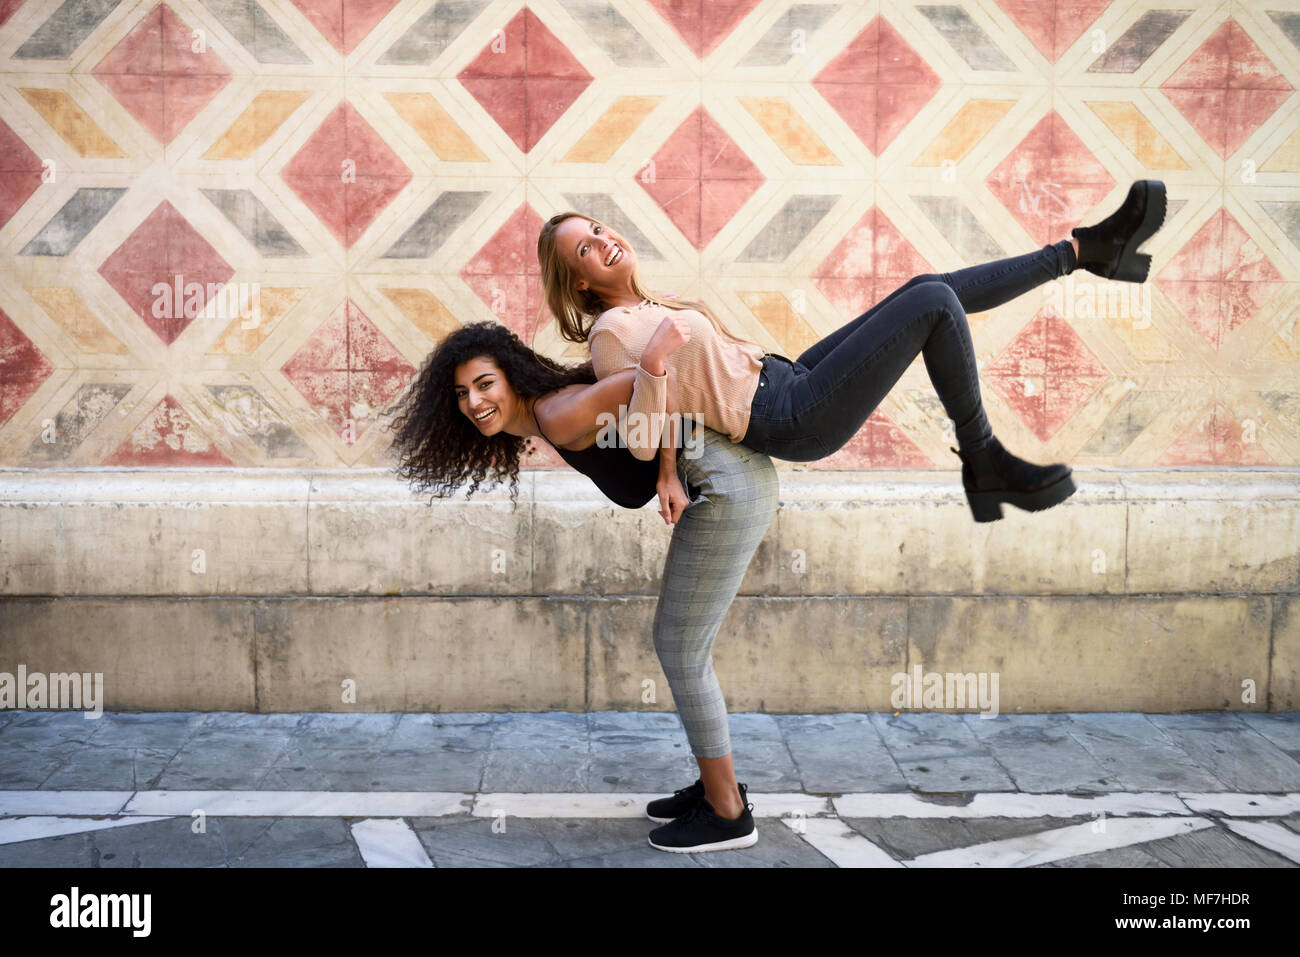 Laughing woman carrying her best friend piggyback - Stock Image